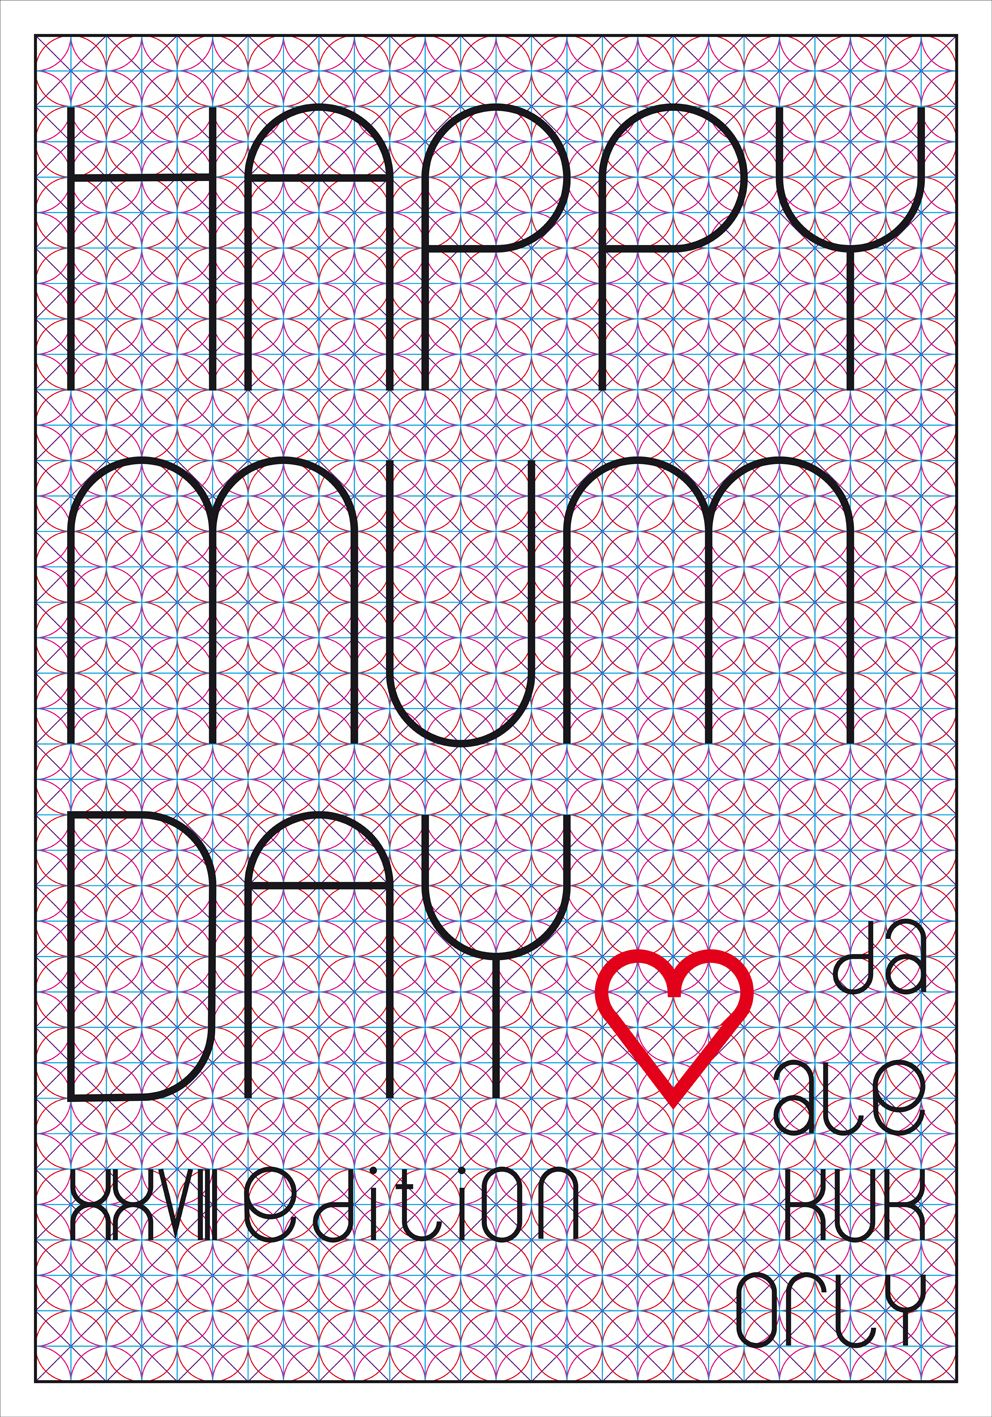 HAPPY MUM DAY XXVIII edition